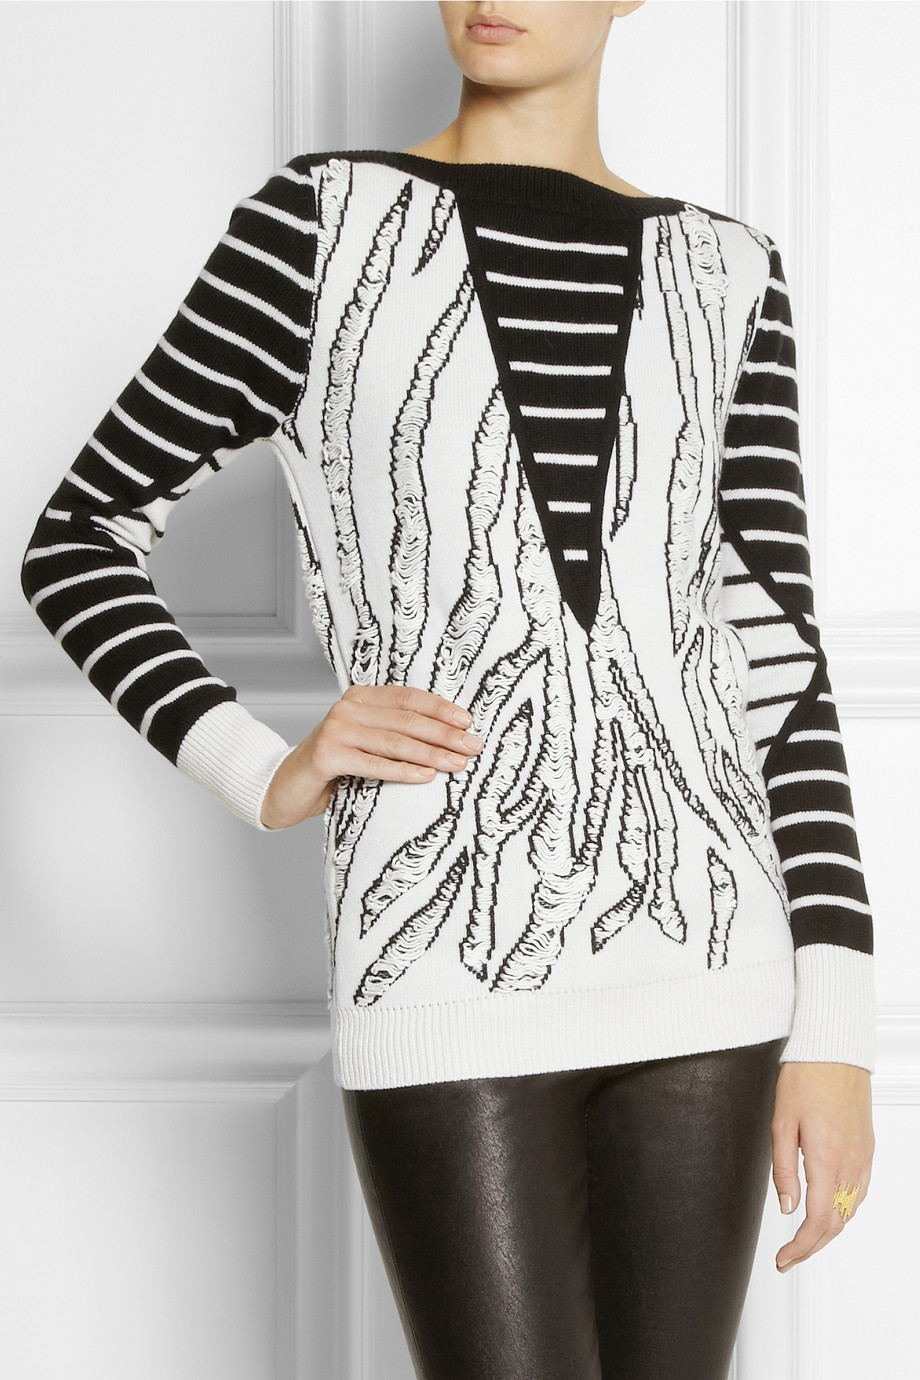 McQ Alexander McQueen   Intarsia wool, cotton and cashmere-blend sweater   NET-A-PORTER.COM_files.jpg